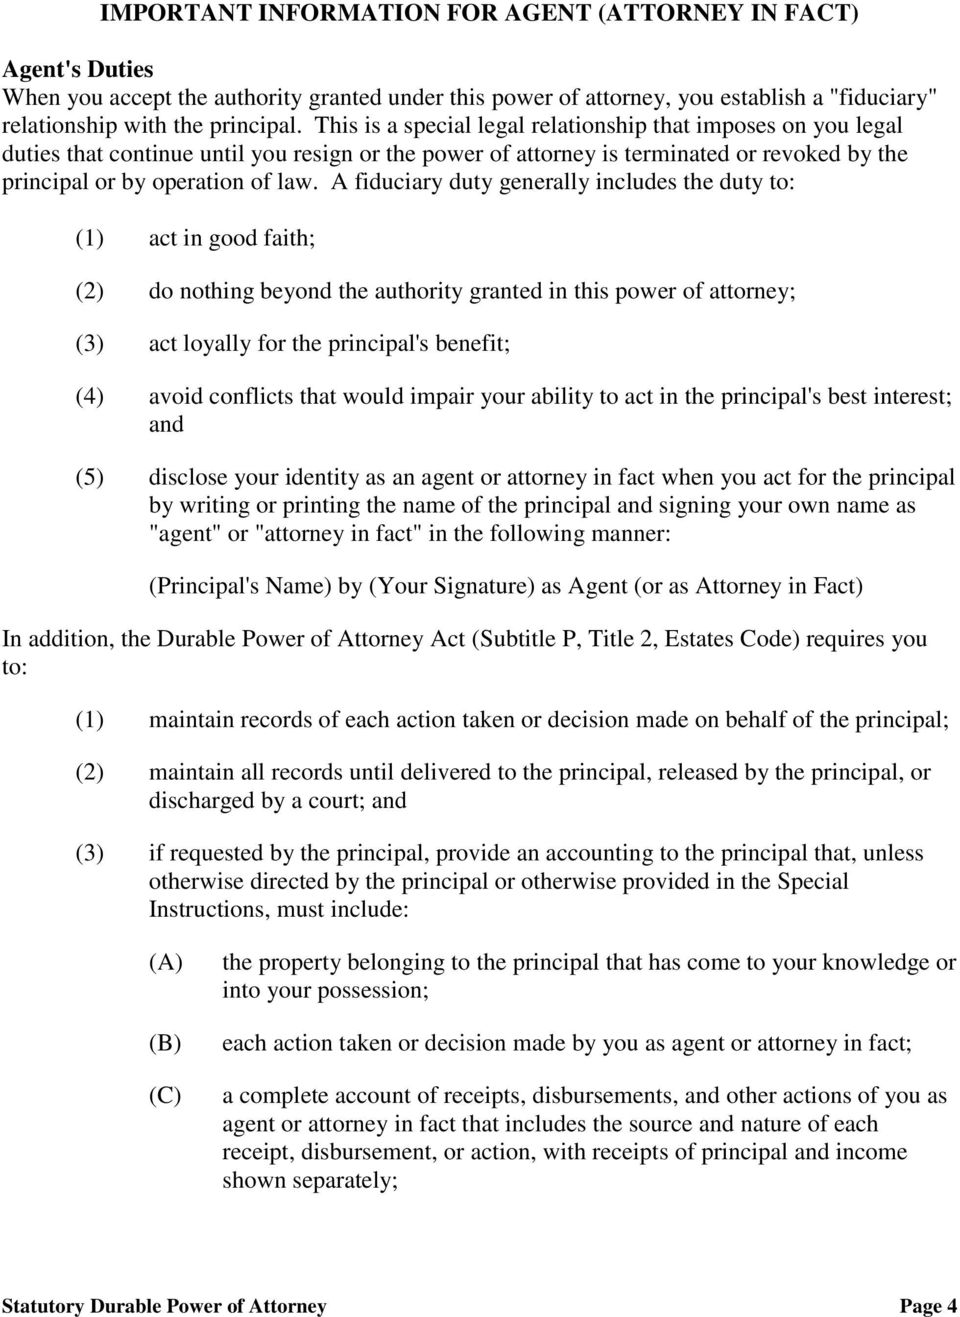 A fiduciary duty generally includes the duty to: (1) act in good faith; (2) do nothing beyond the authority granted in this power of attorney; (3) act loyally for the principal's benefit; (4) avoid